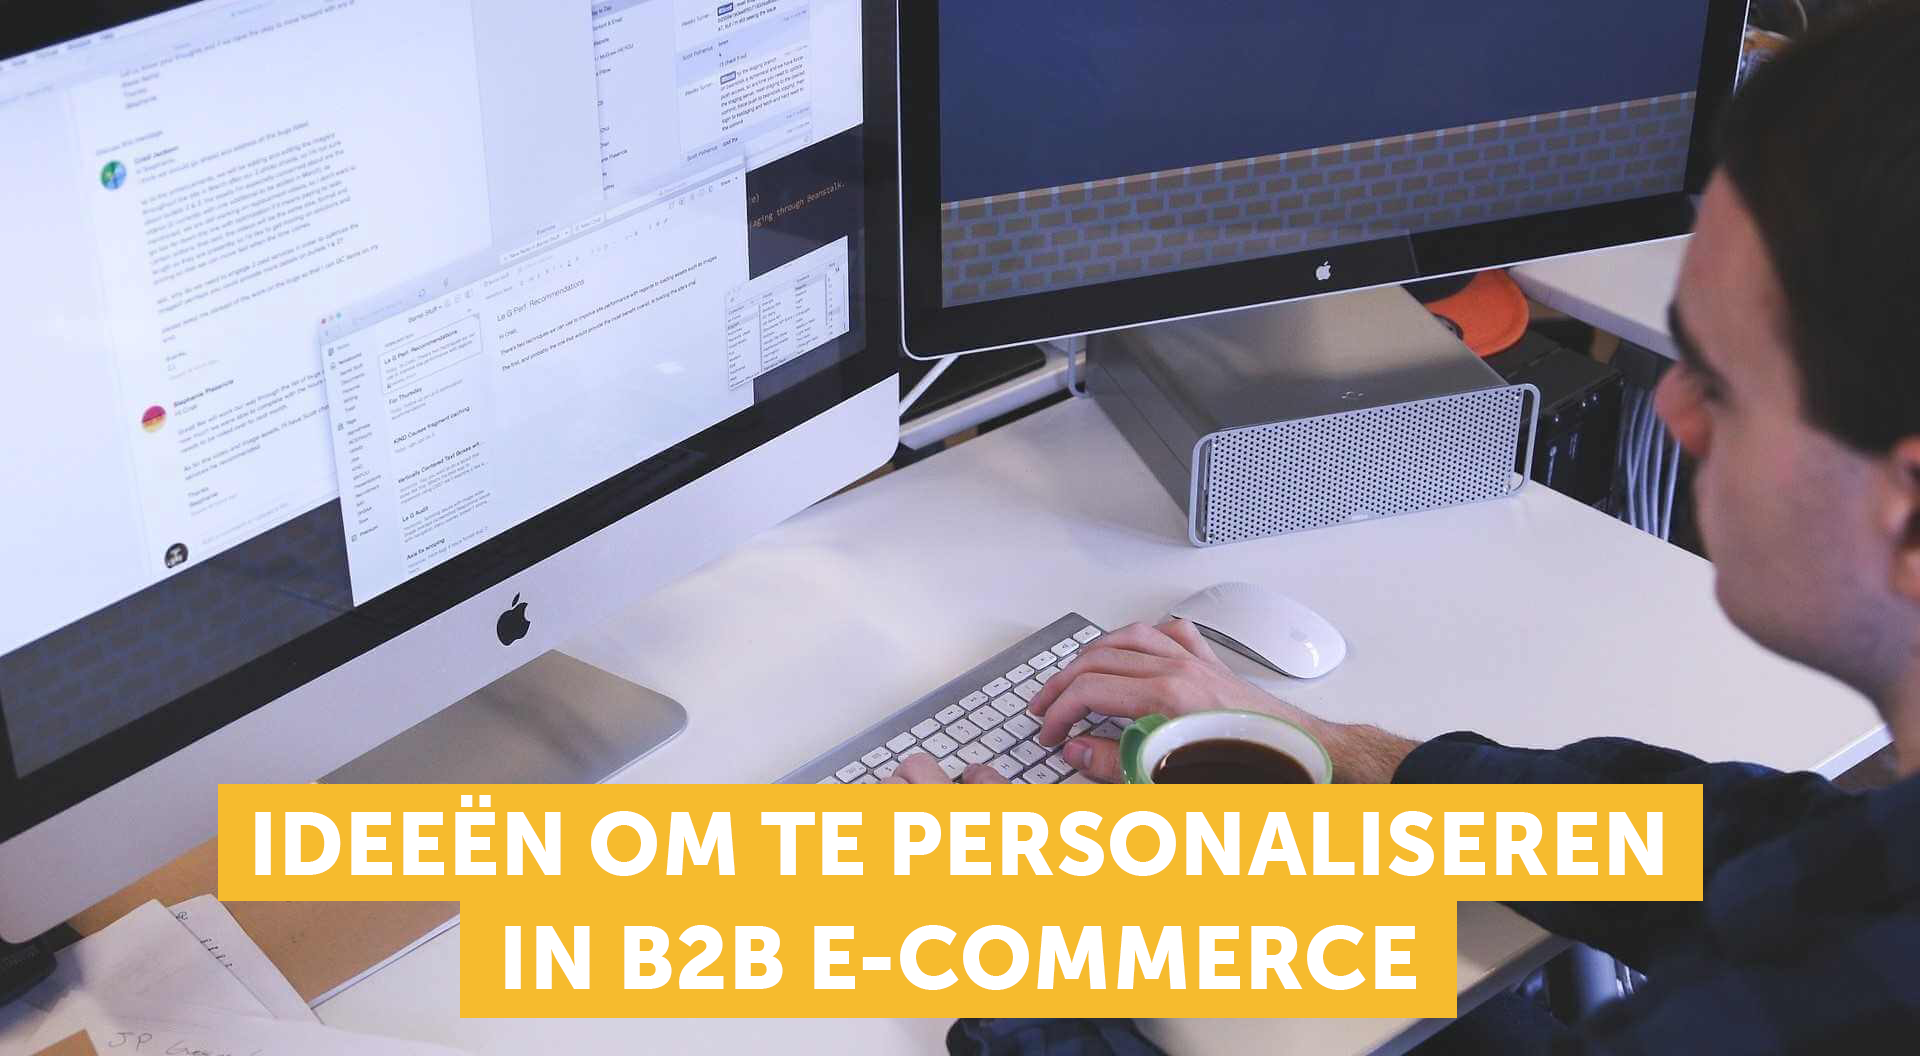 personaliseren in b2b e-commerce